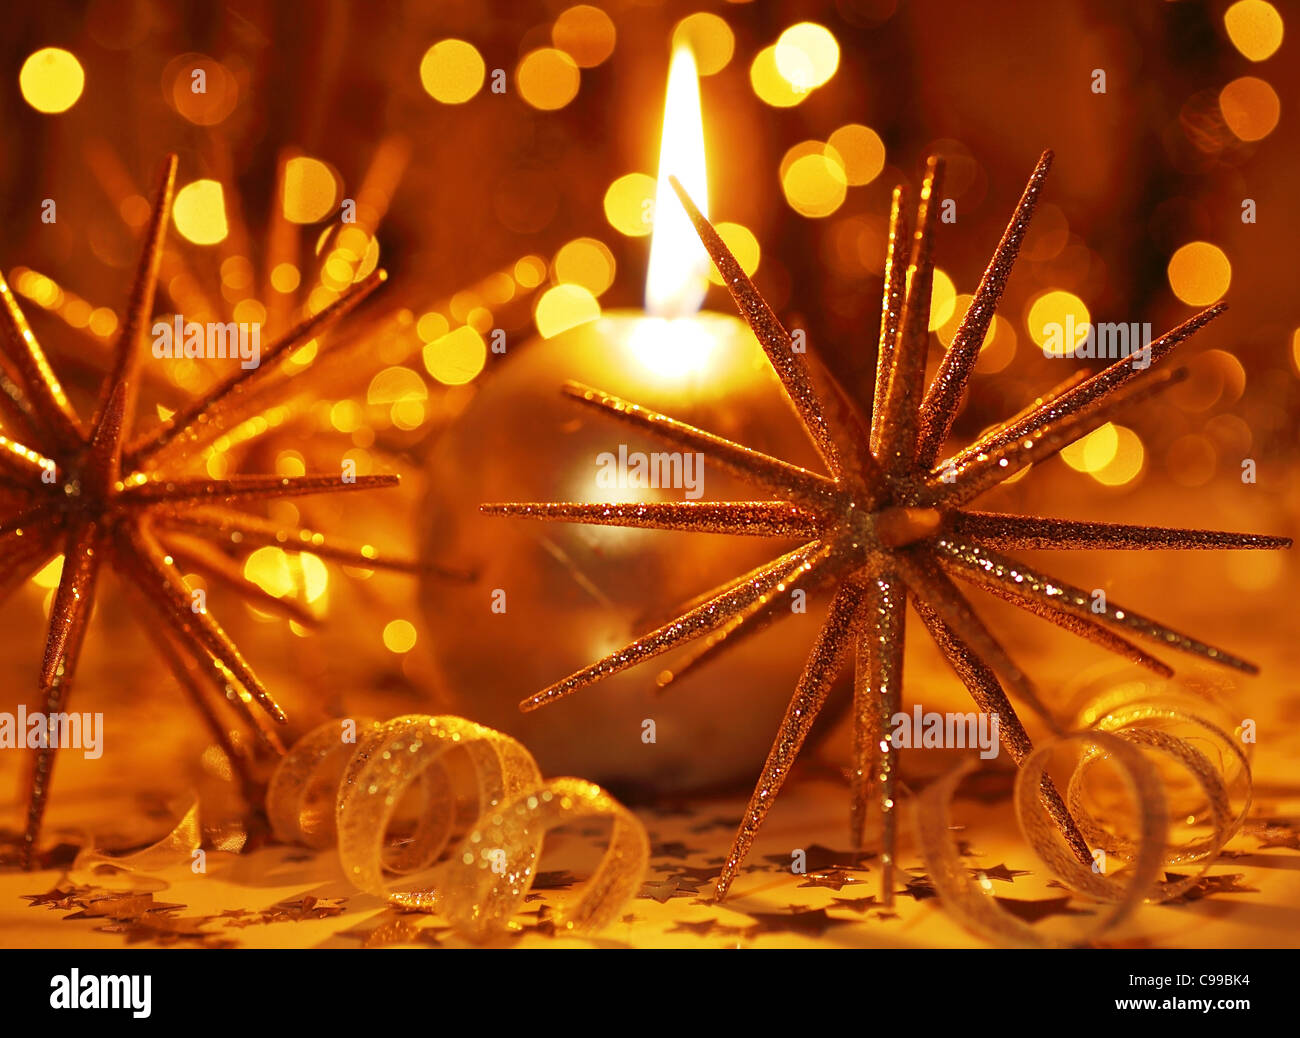 Golden holiday background with candle and Christmas tree ornament and decoration - Stock Image